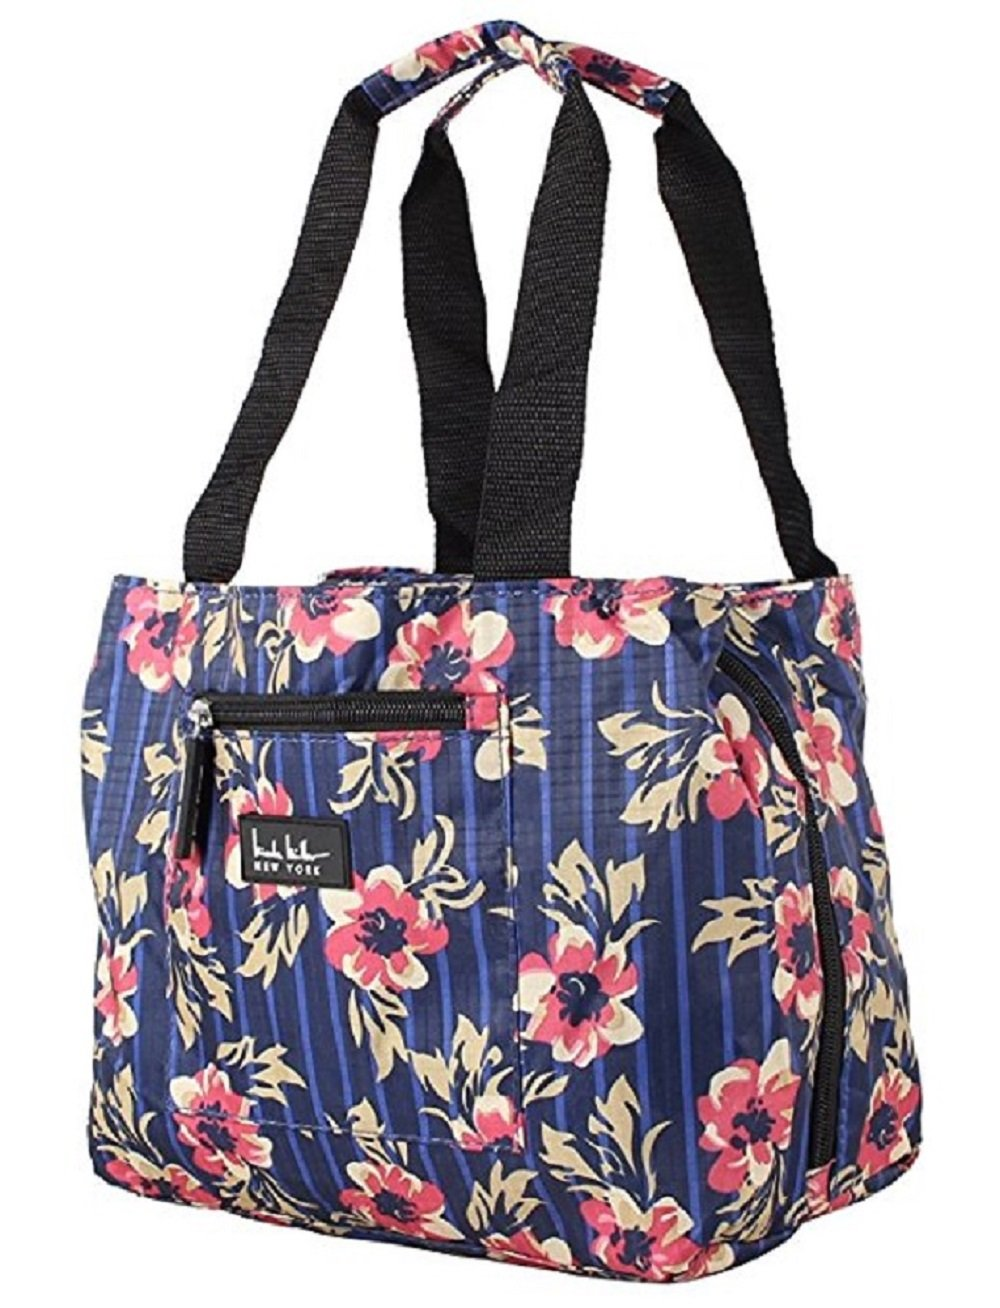 Nicole Miller of New York Insulated 11 Floral Lunch Tote- Flower Navy